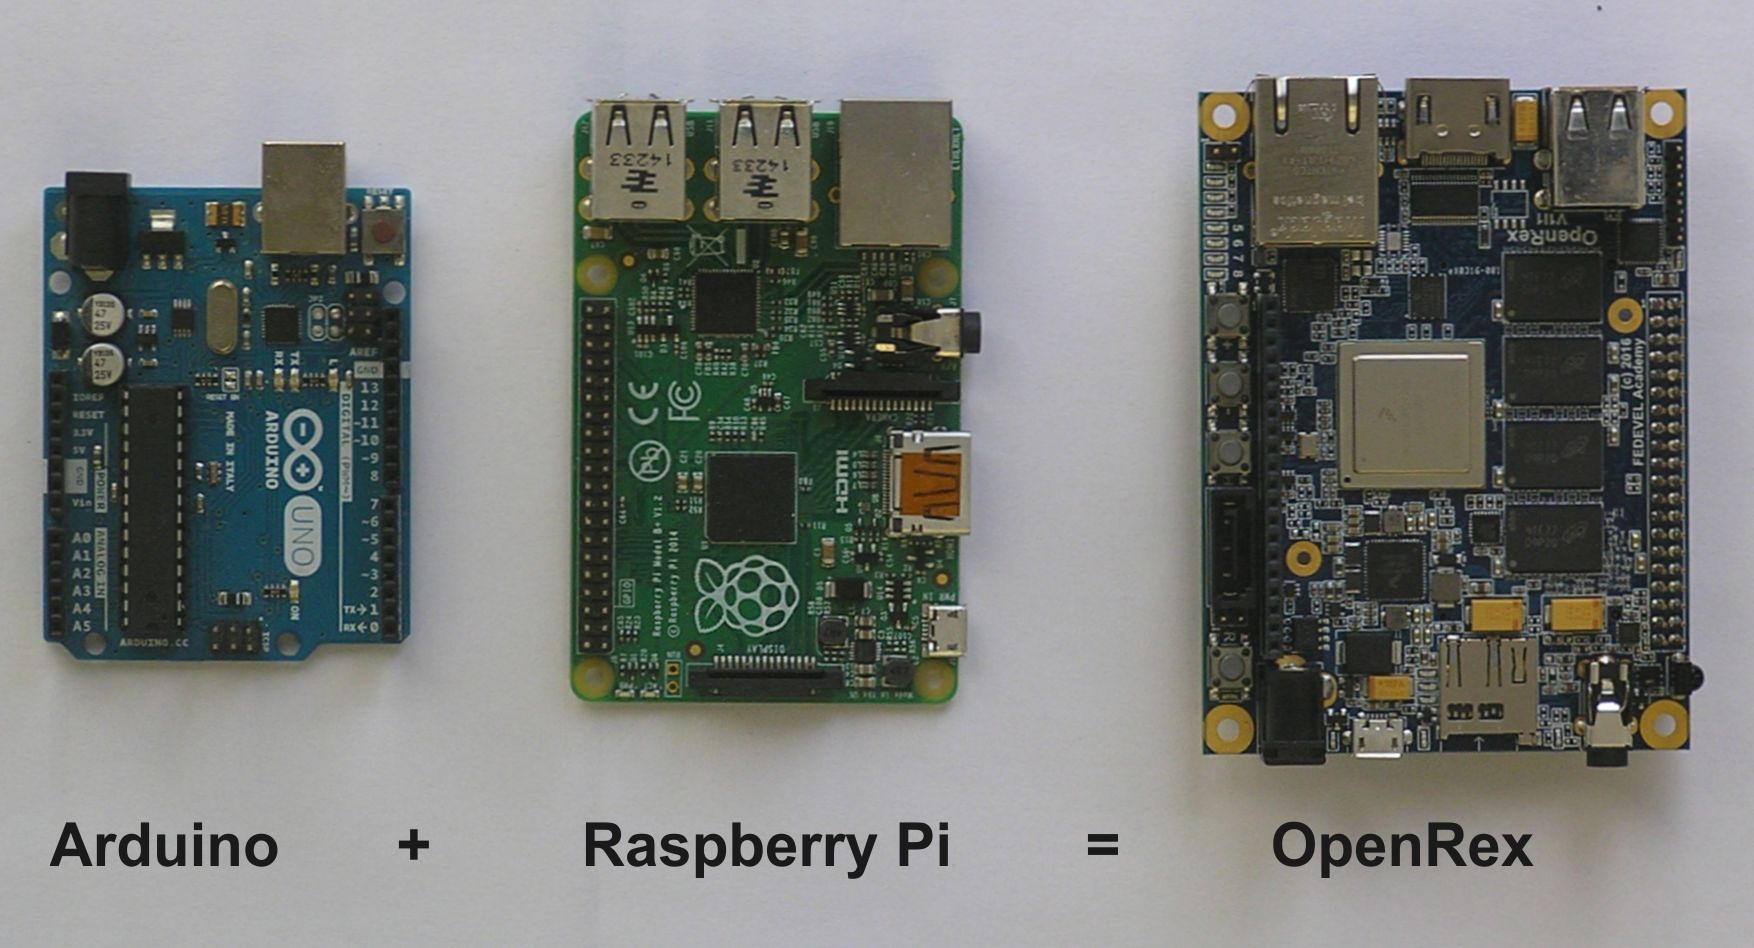 Arduino + Raspberry Pi = OpenRex, the open source project ...